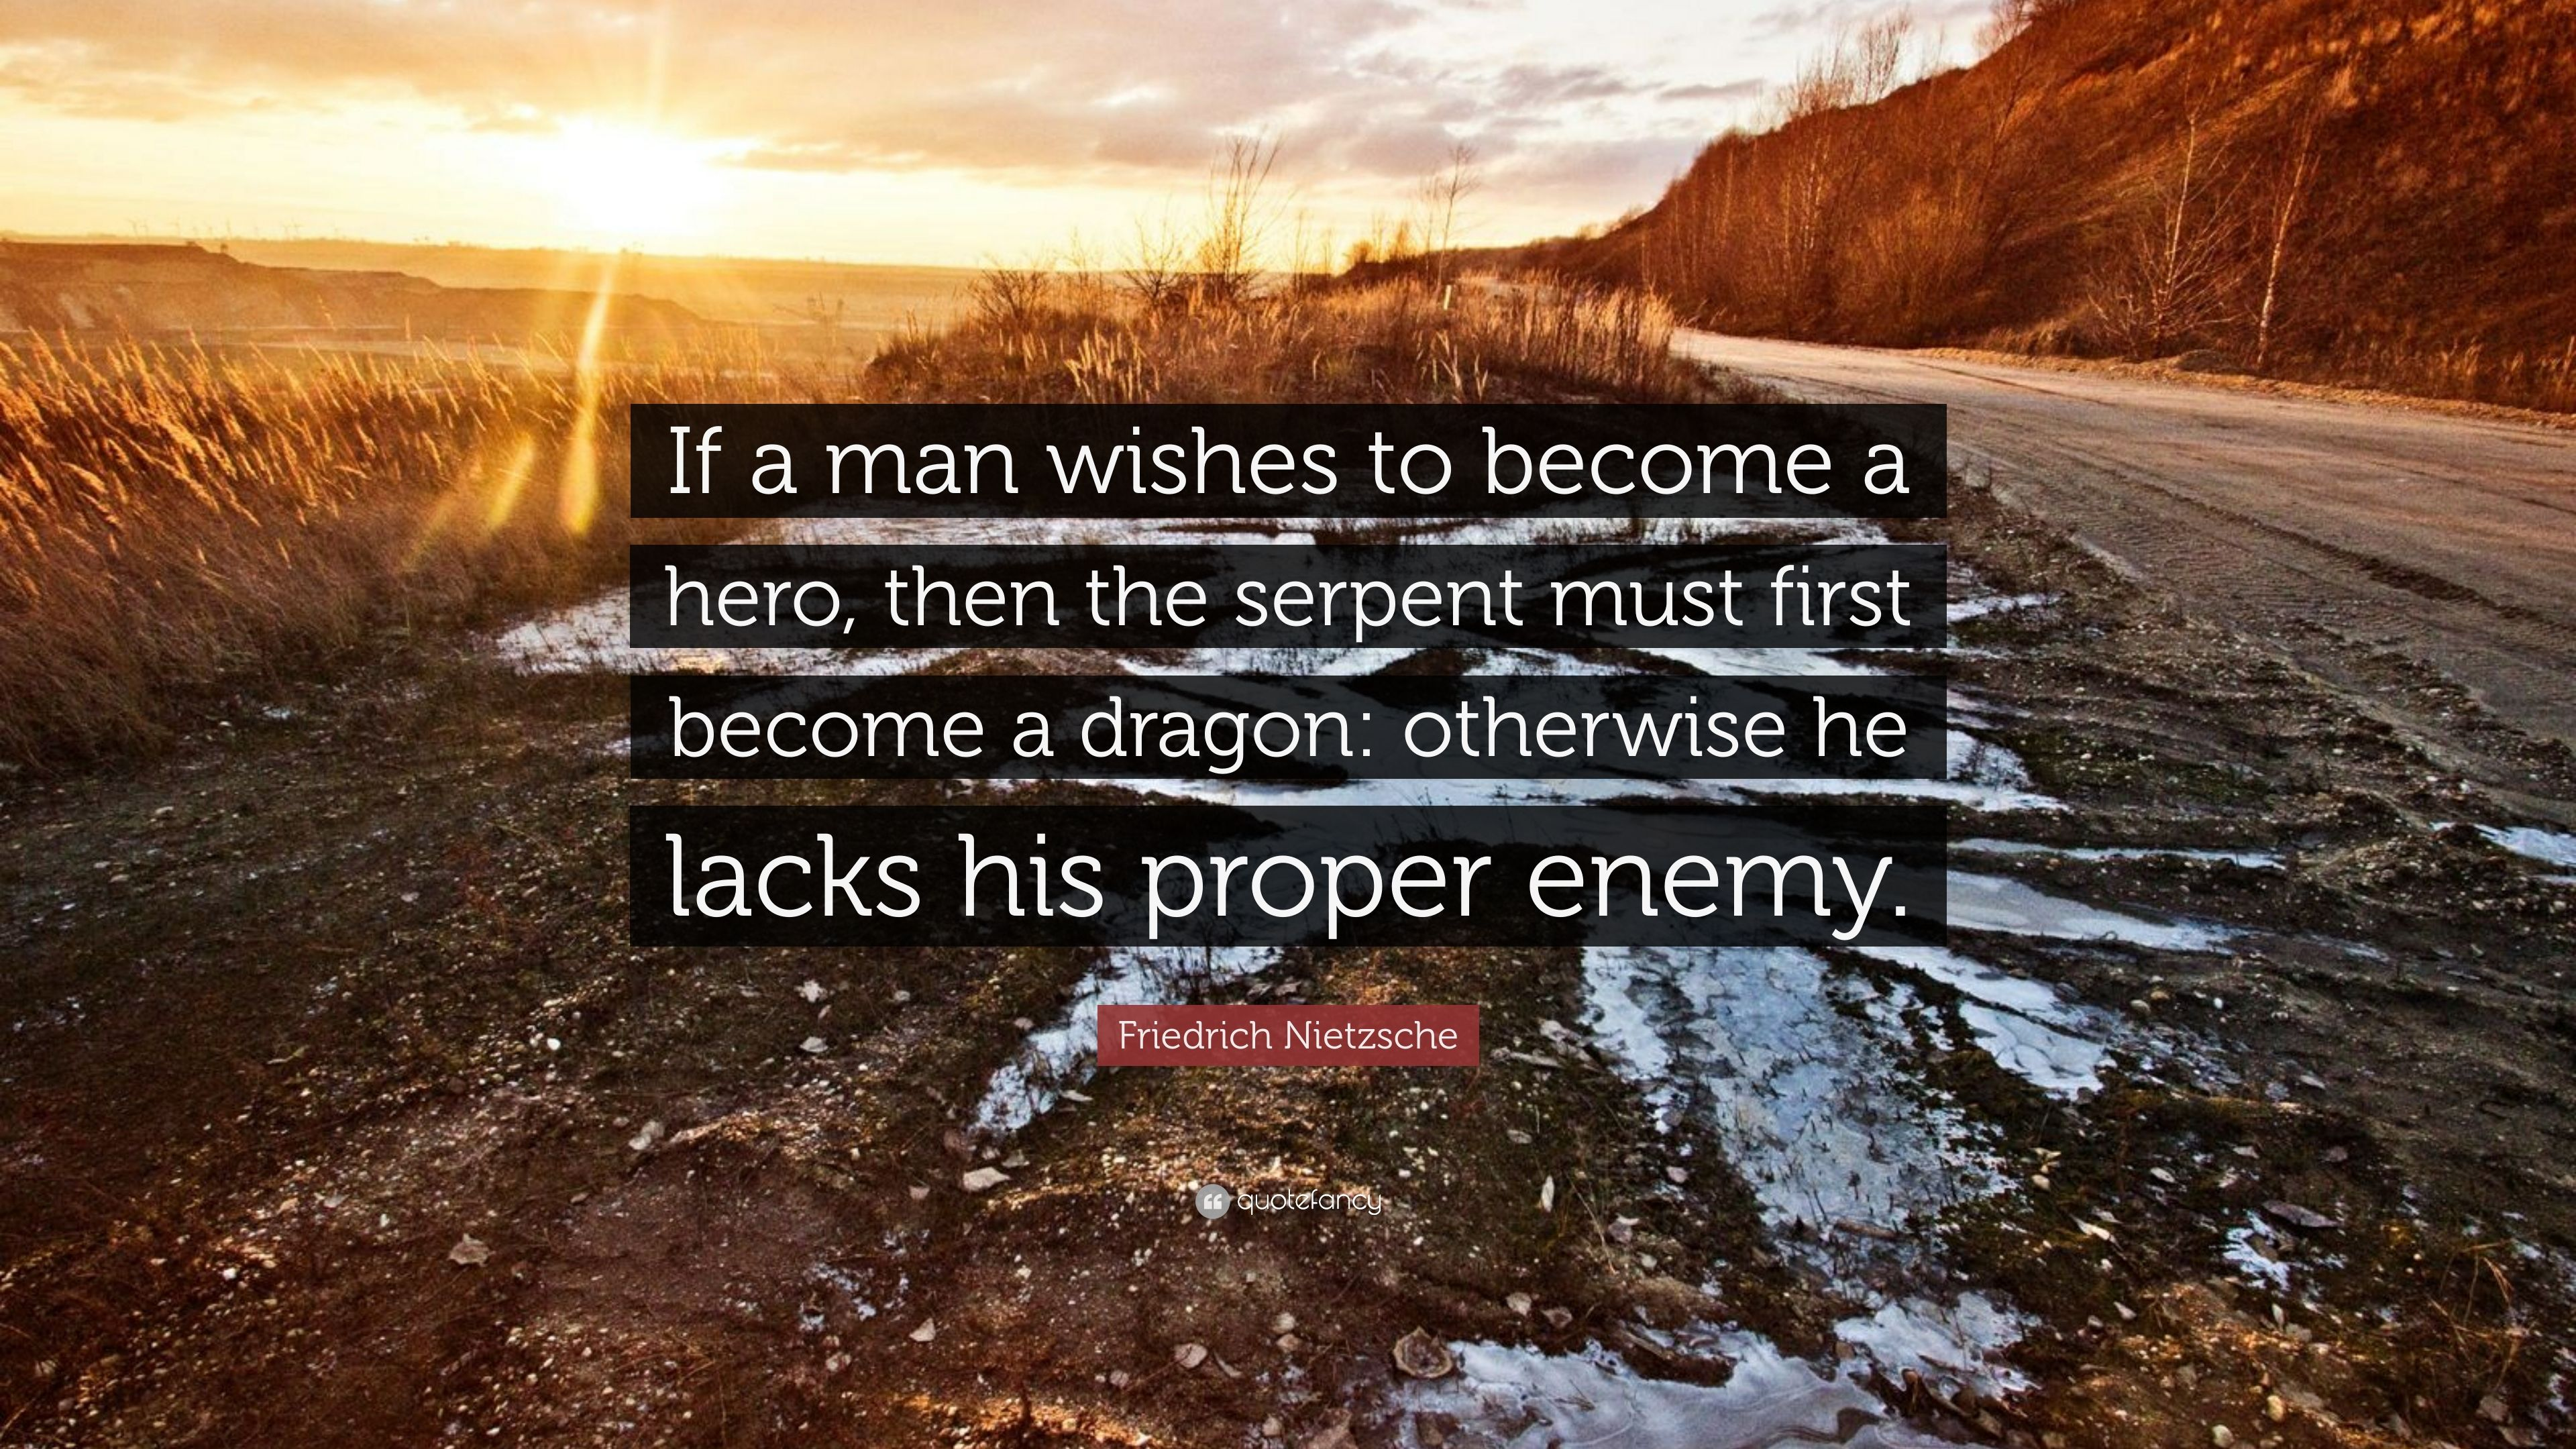 Friedrich Nietzsche Quote If A Man Wishes To Become A Hero Then